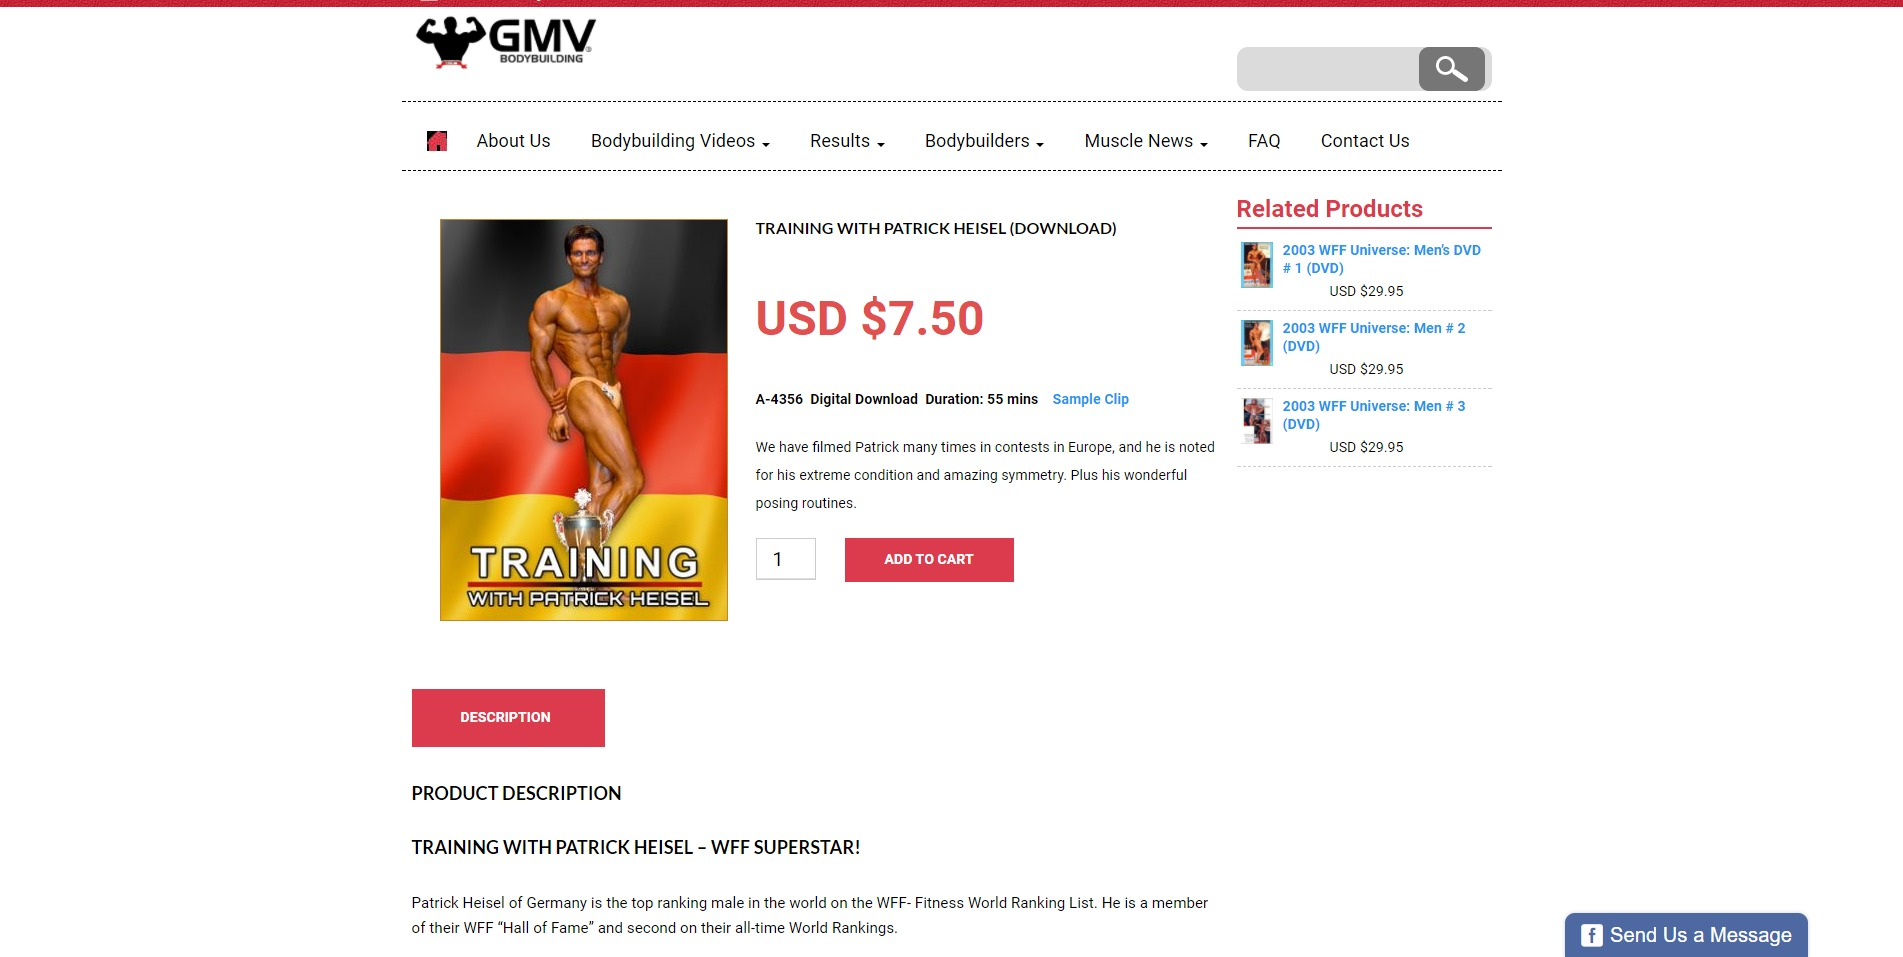 Training with Patrick Heisel Download GMV Bodybuilding